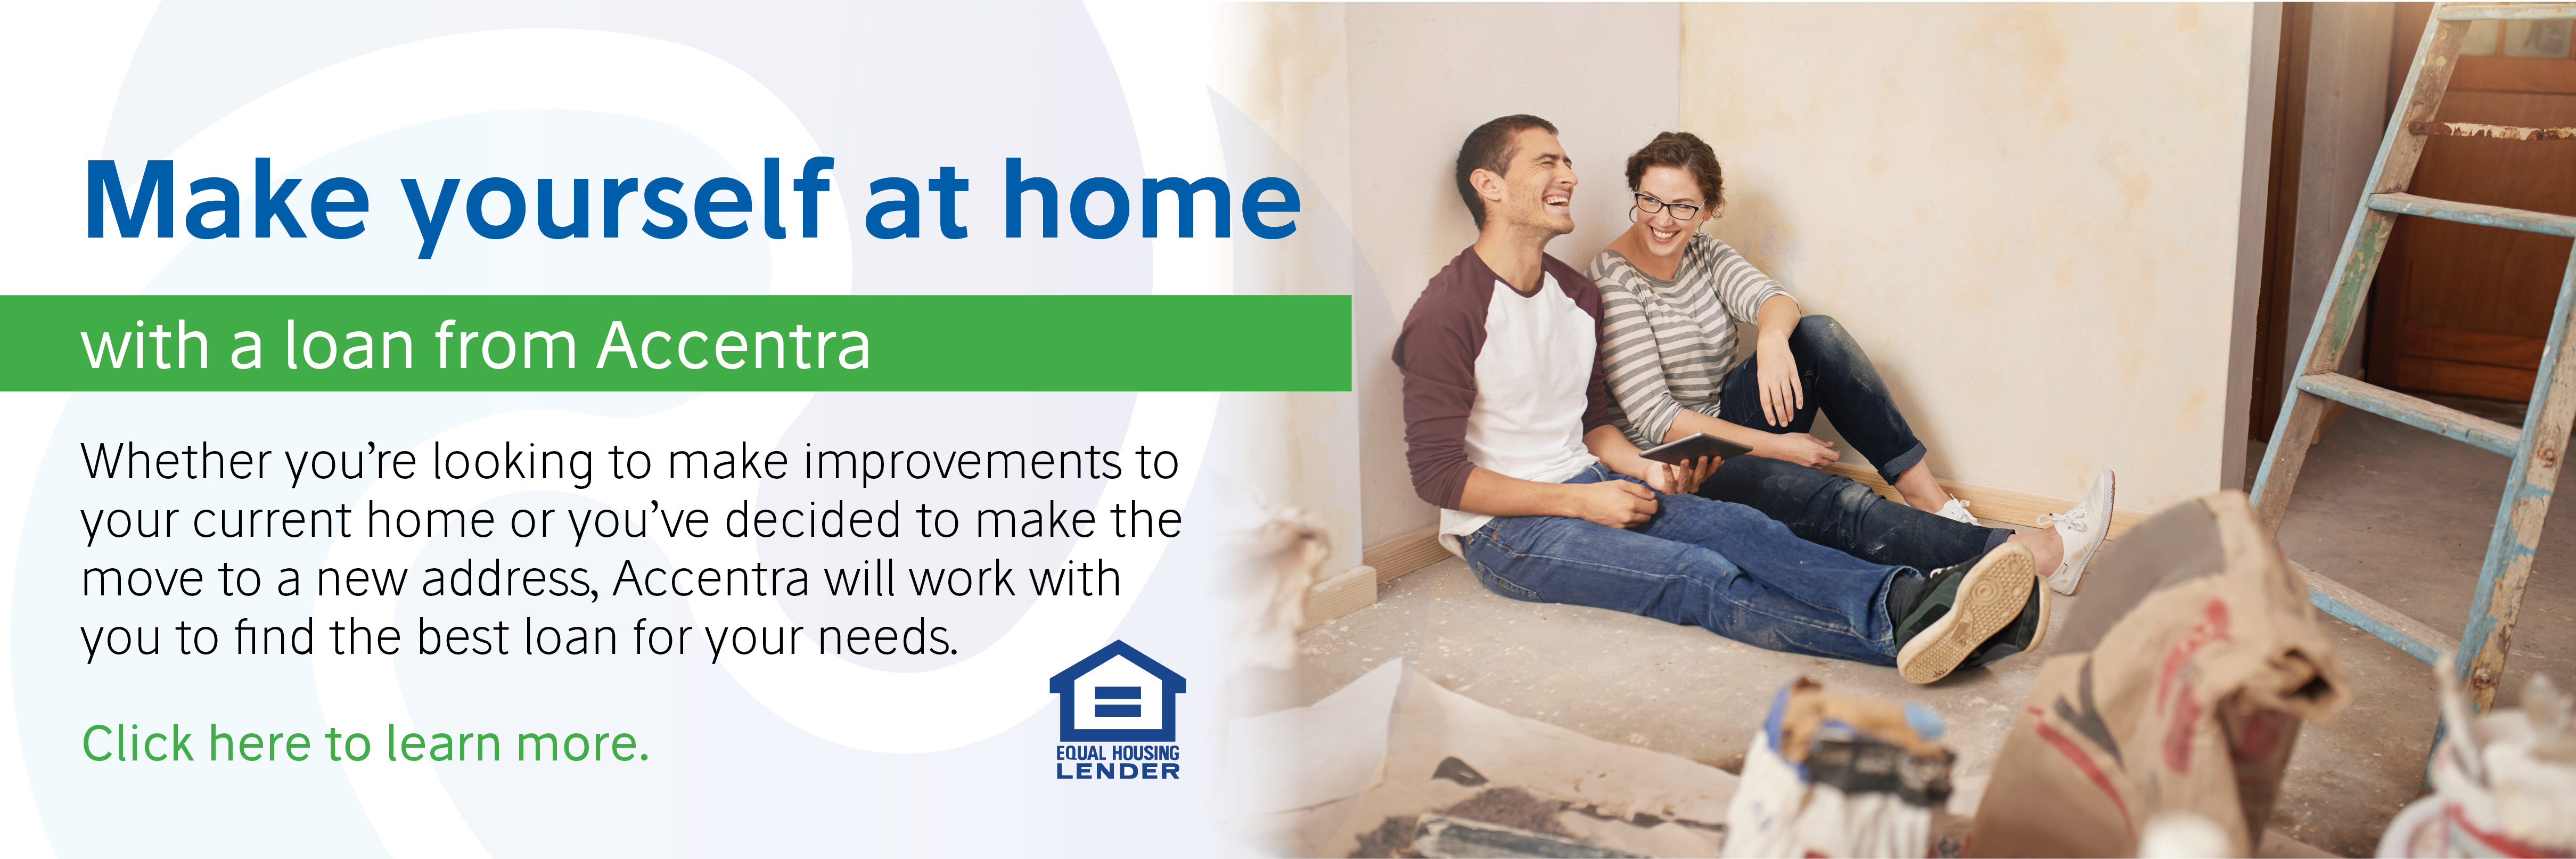 Home Loans Spring 2018